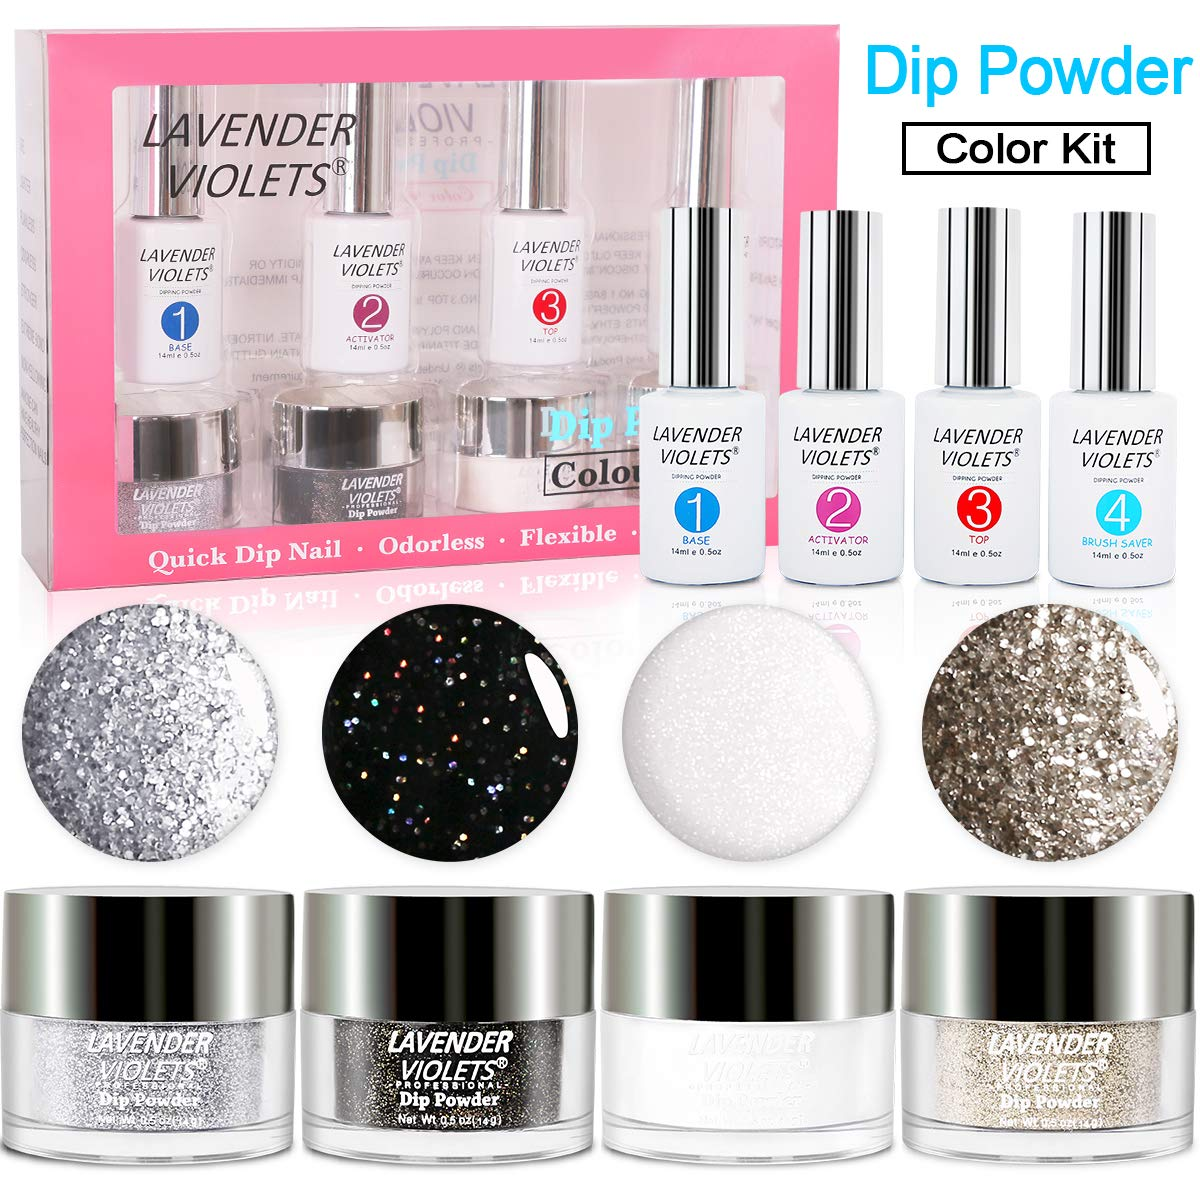 Dipping Powder Nail Kit LED-Lamp-Free-J770 by Lavender Violets